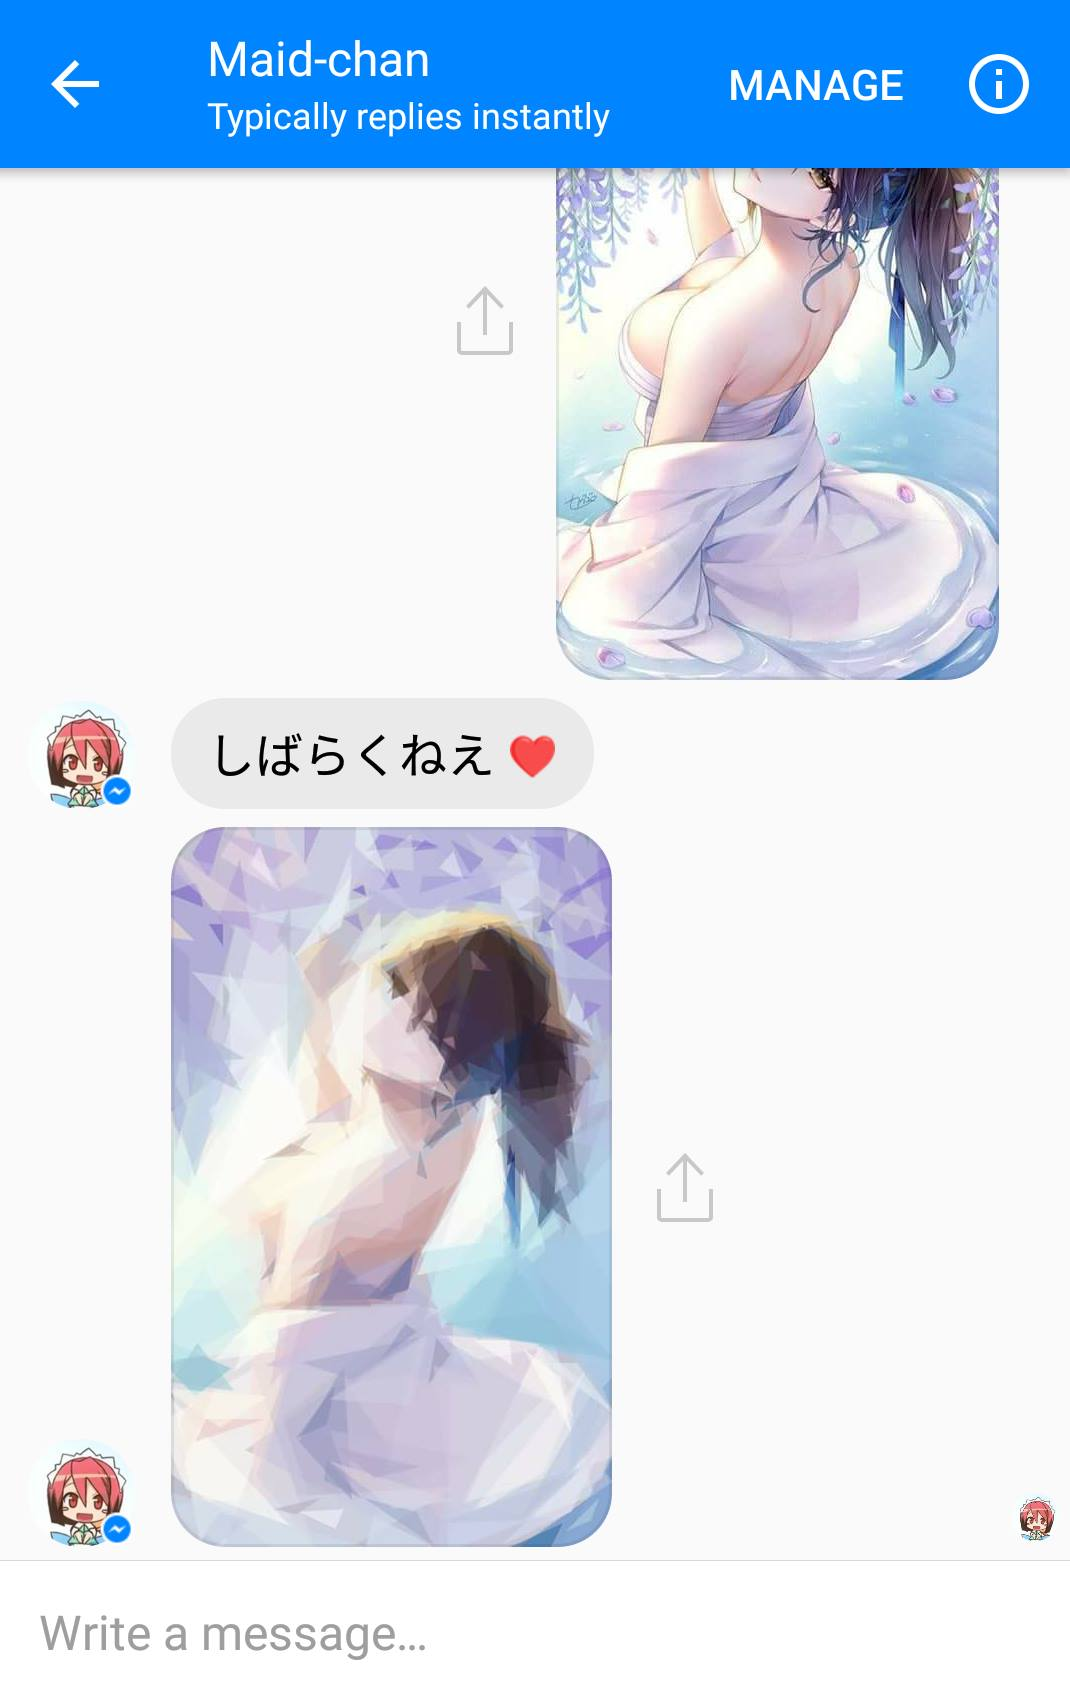 messenger-maid-chan/README md at master · freedomofkeima